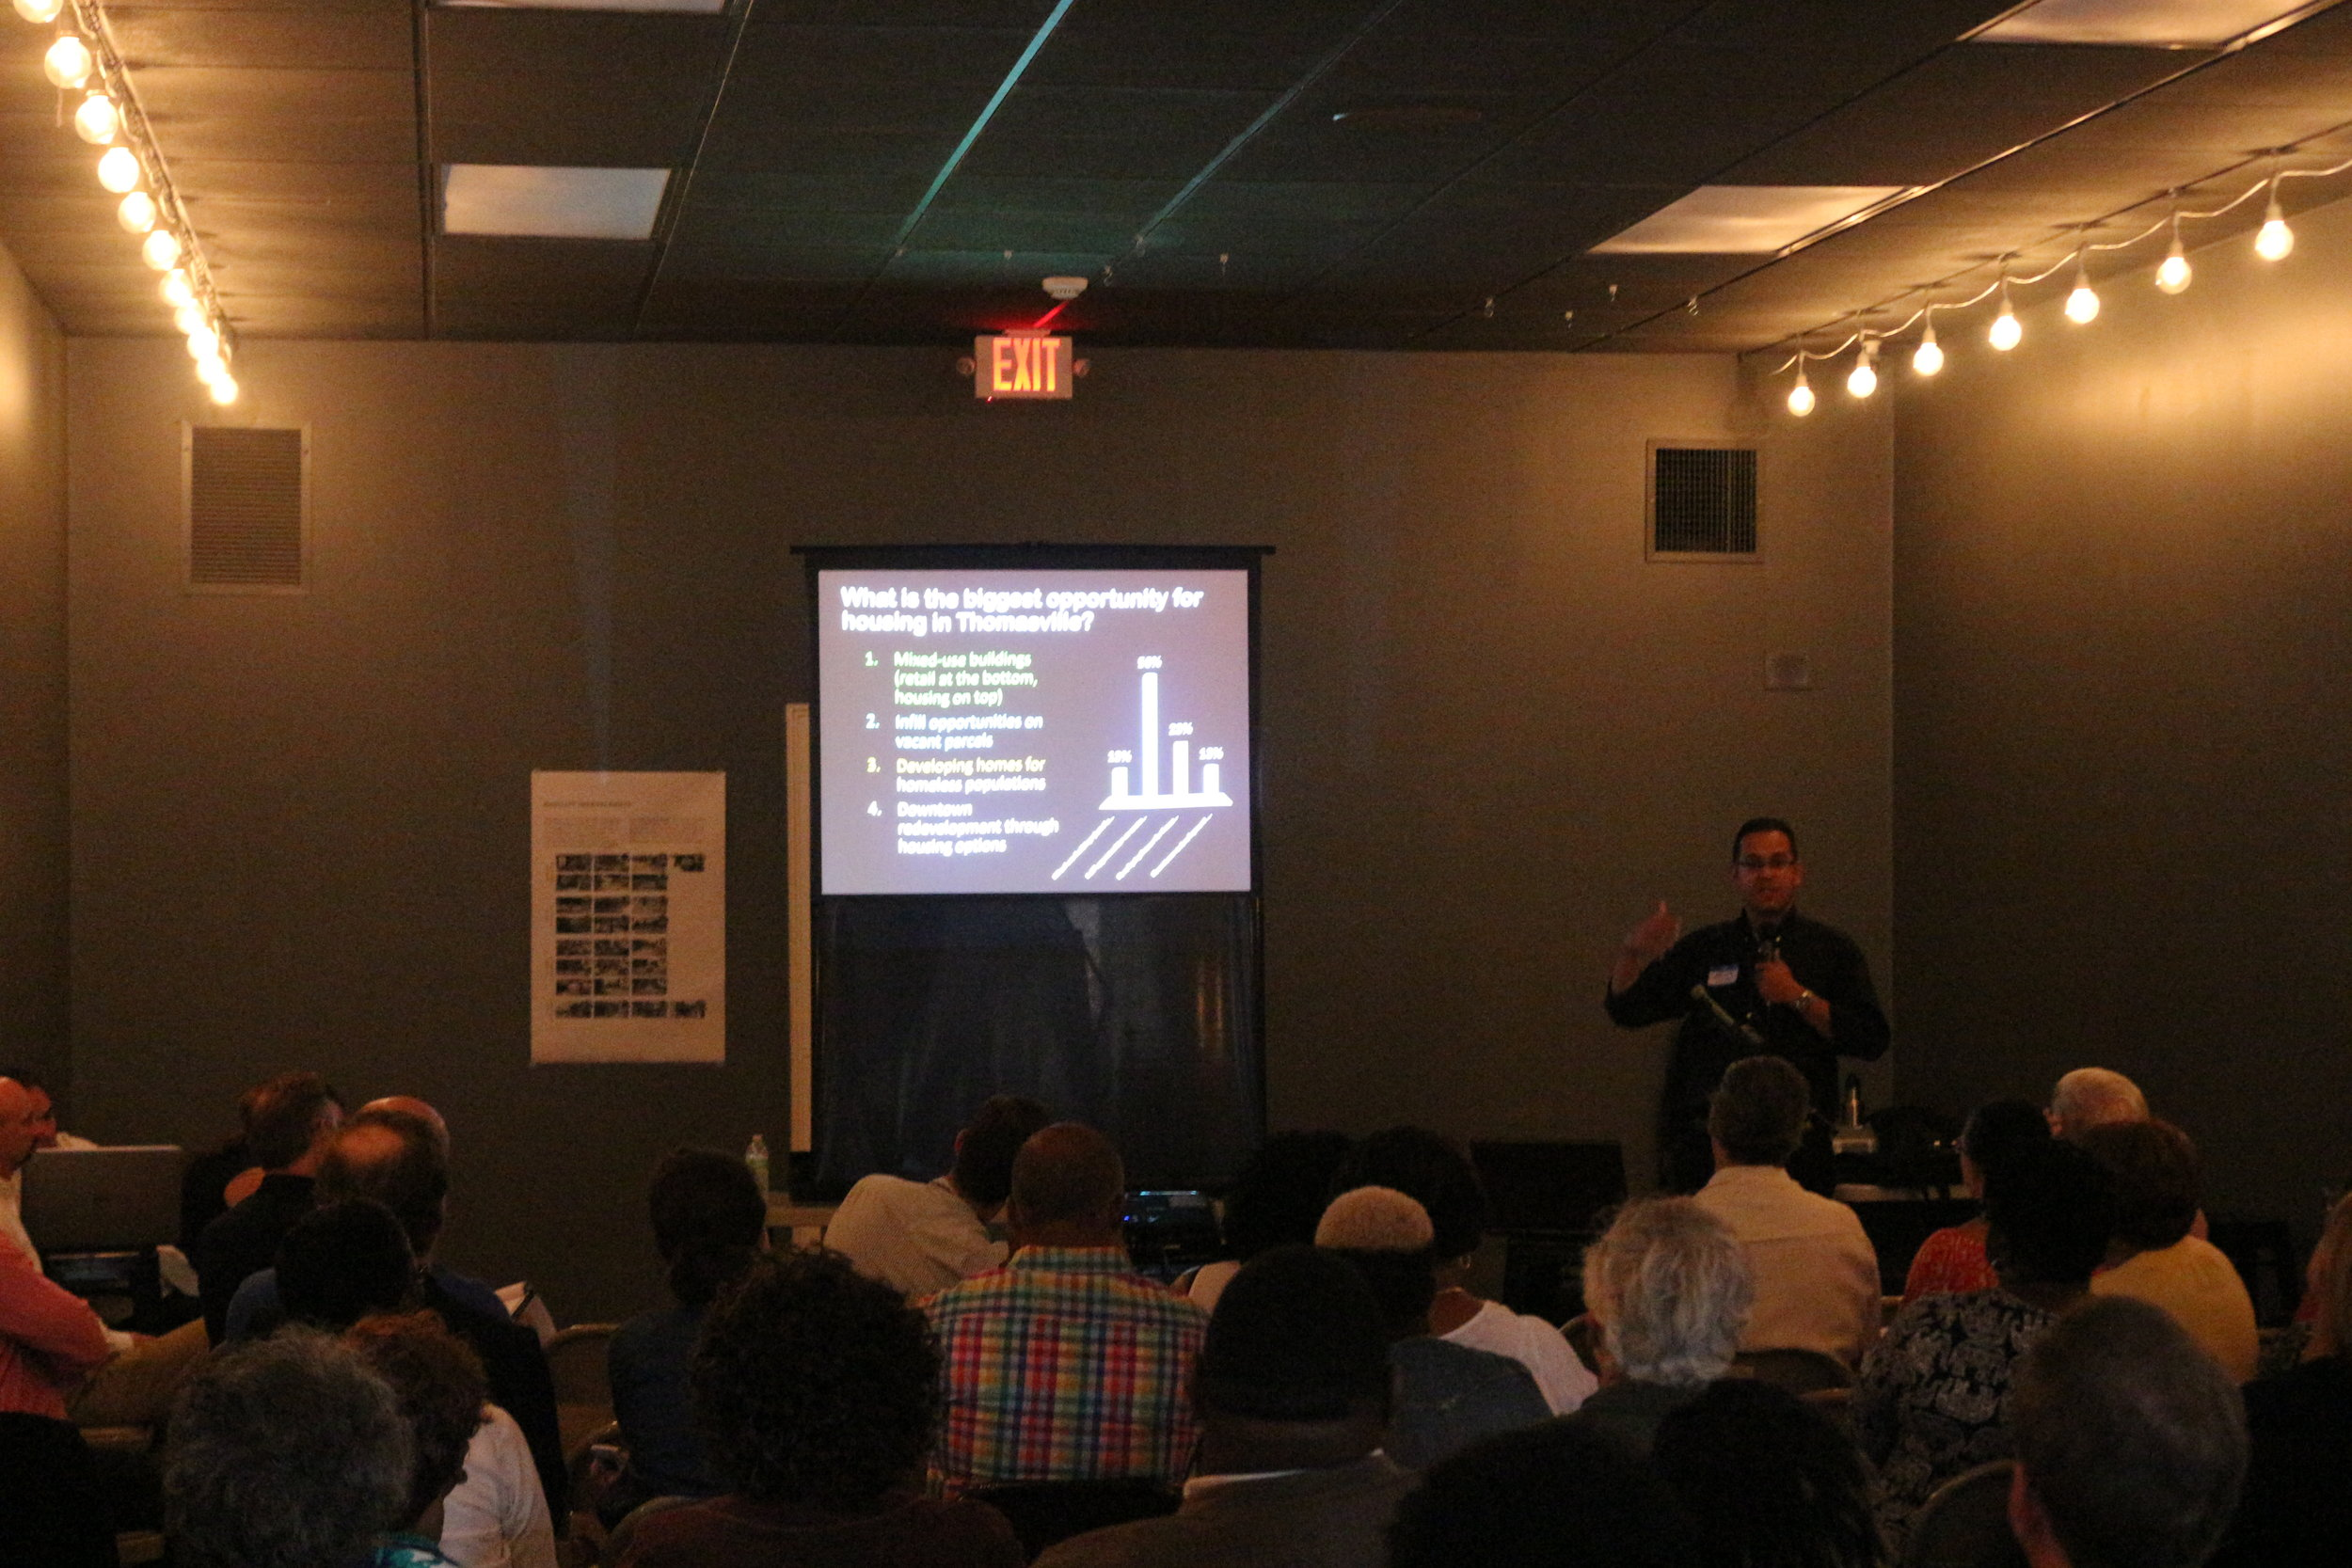 Housing options and affordability were discussed at the Work in Progress presentation.